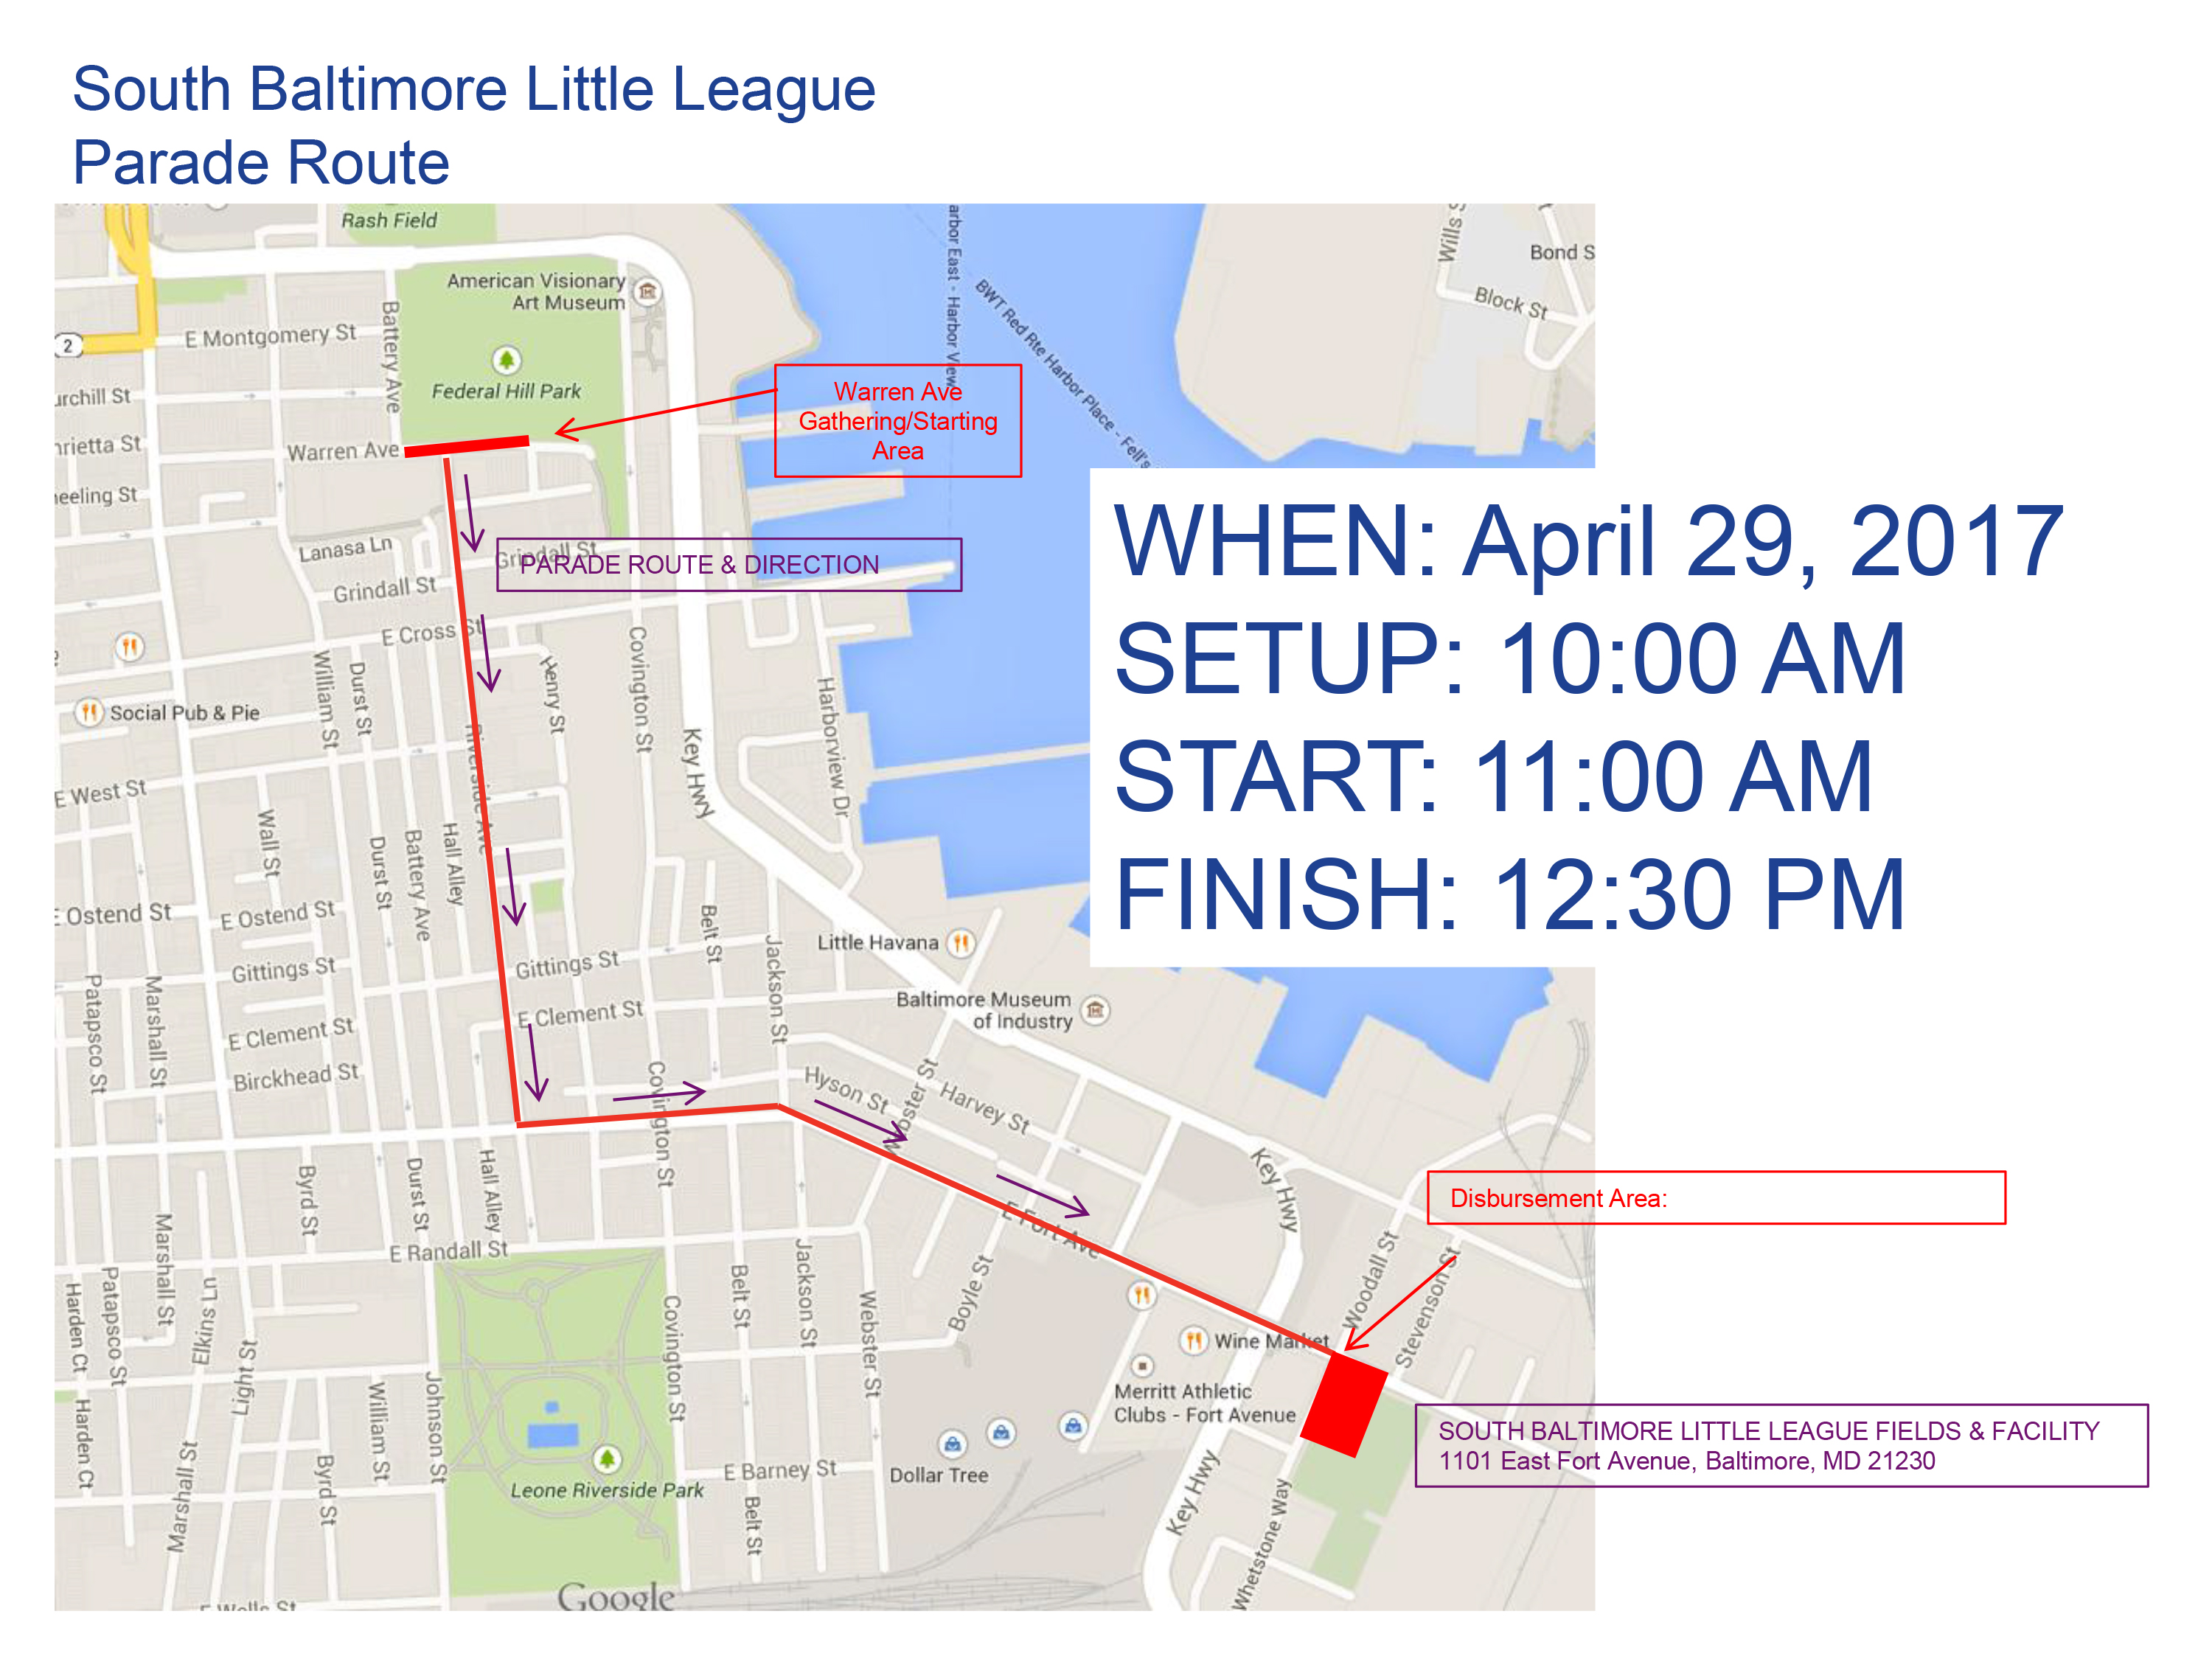 South Baltimore Little League Parade April 29, 2017!